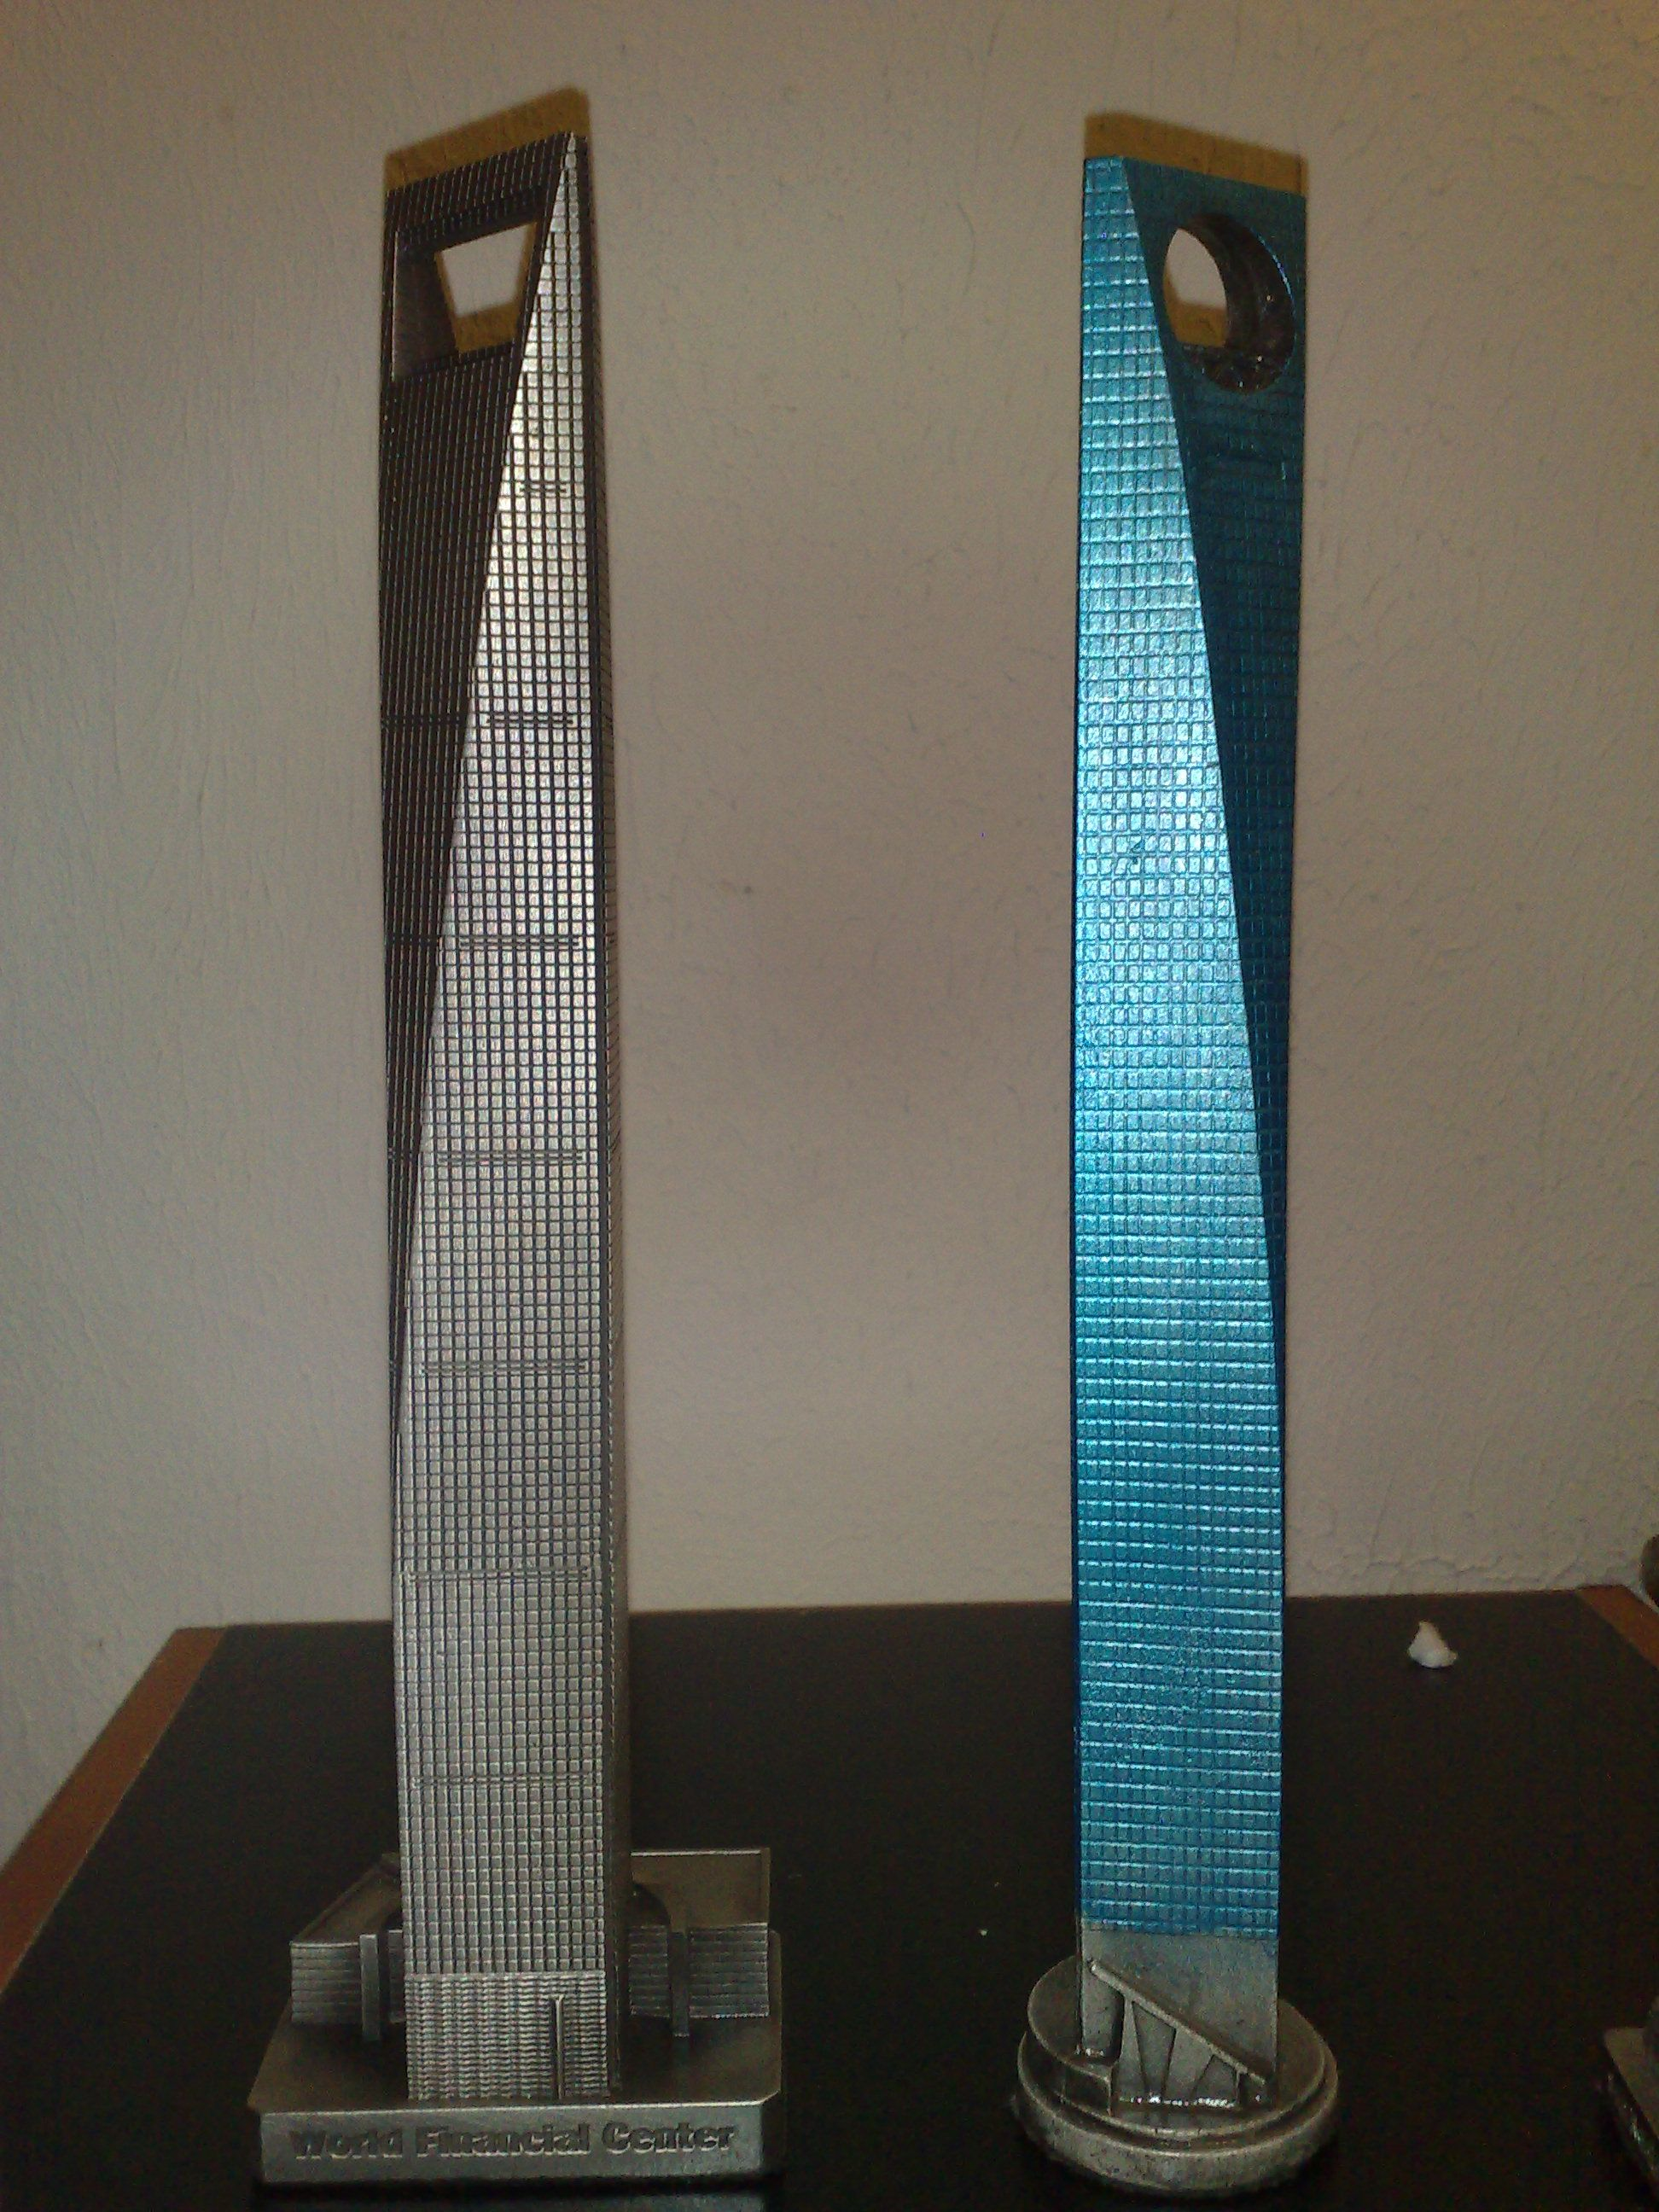 Two Versions Of The Shanghai World Finance Center By Inforcustech Both Replicas Can Be Found T Replicabuildings Com World Finance Interesting Things Cityscape